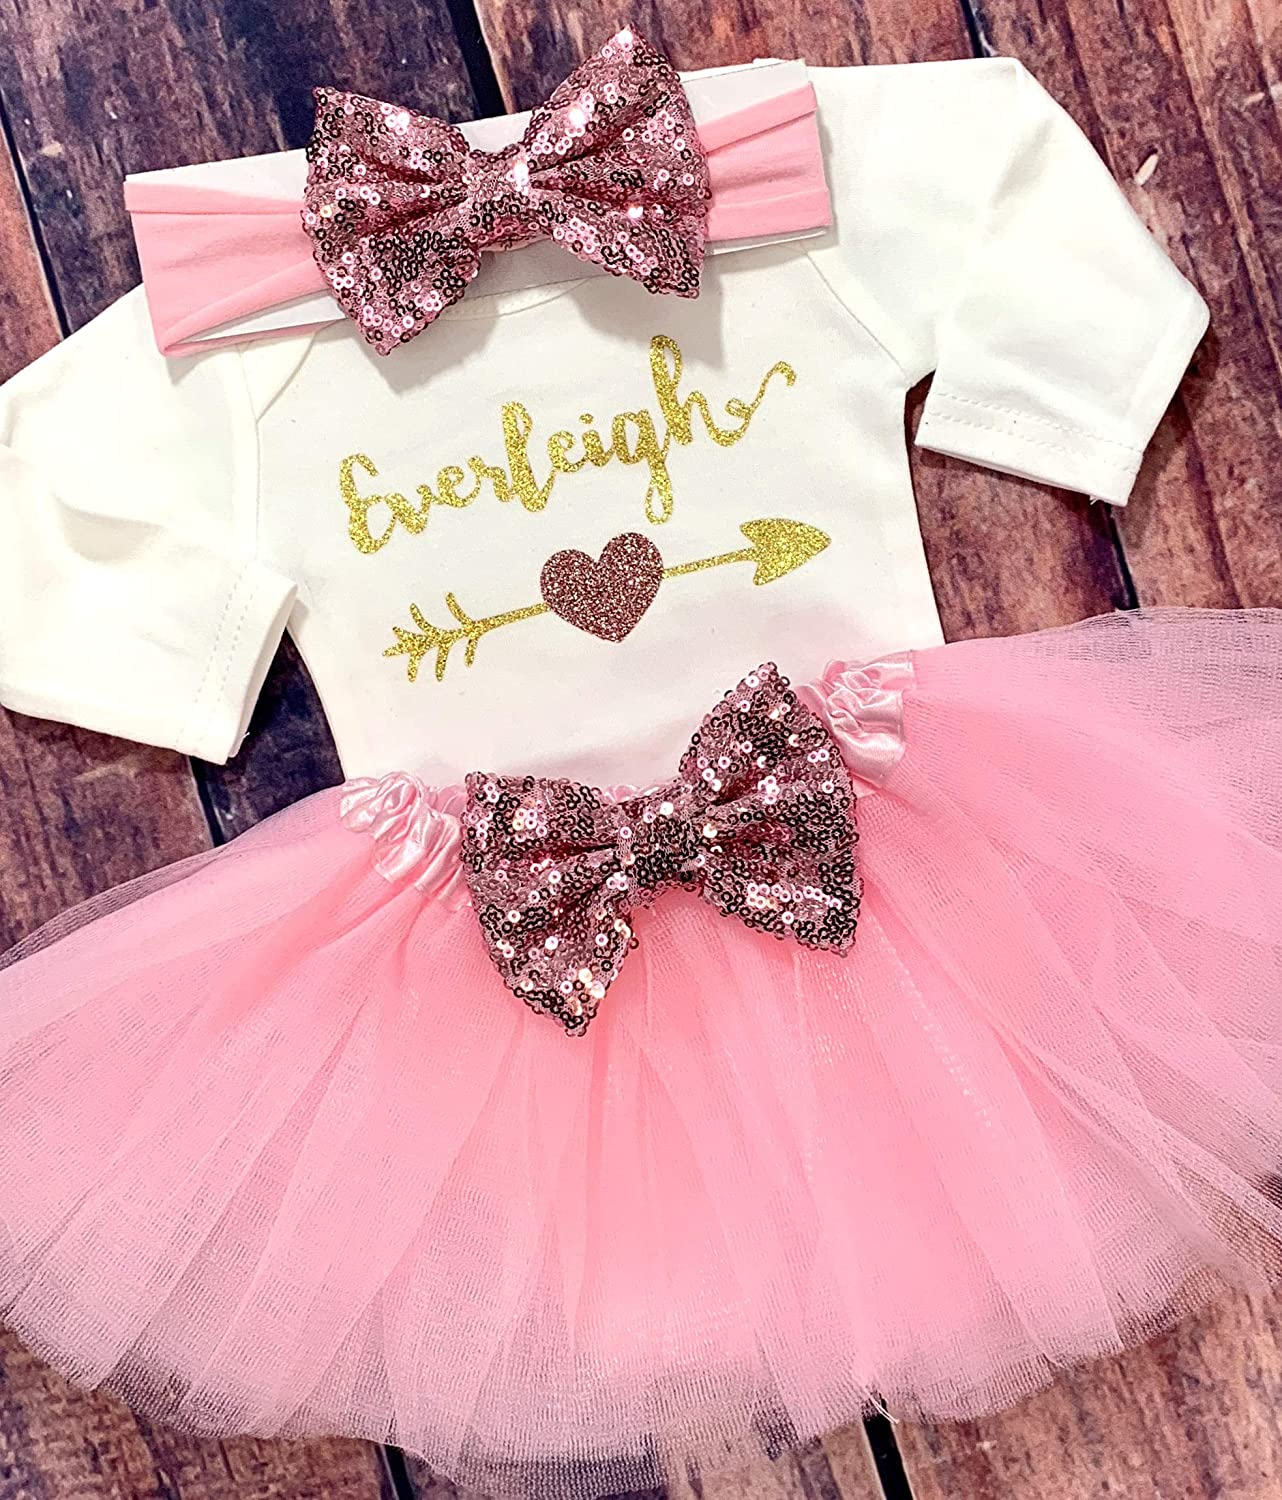 b18ff006126a Amazon.com  Personalized Coming Home Outfit Baby Girl Clothes Take ...